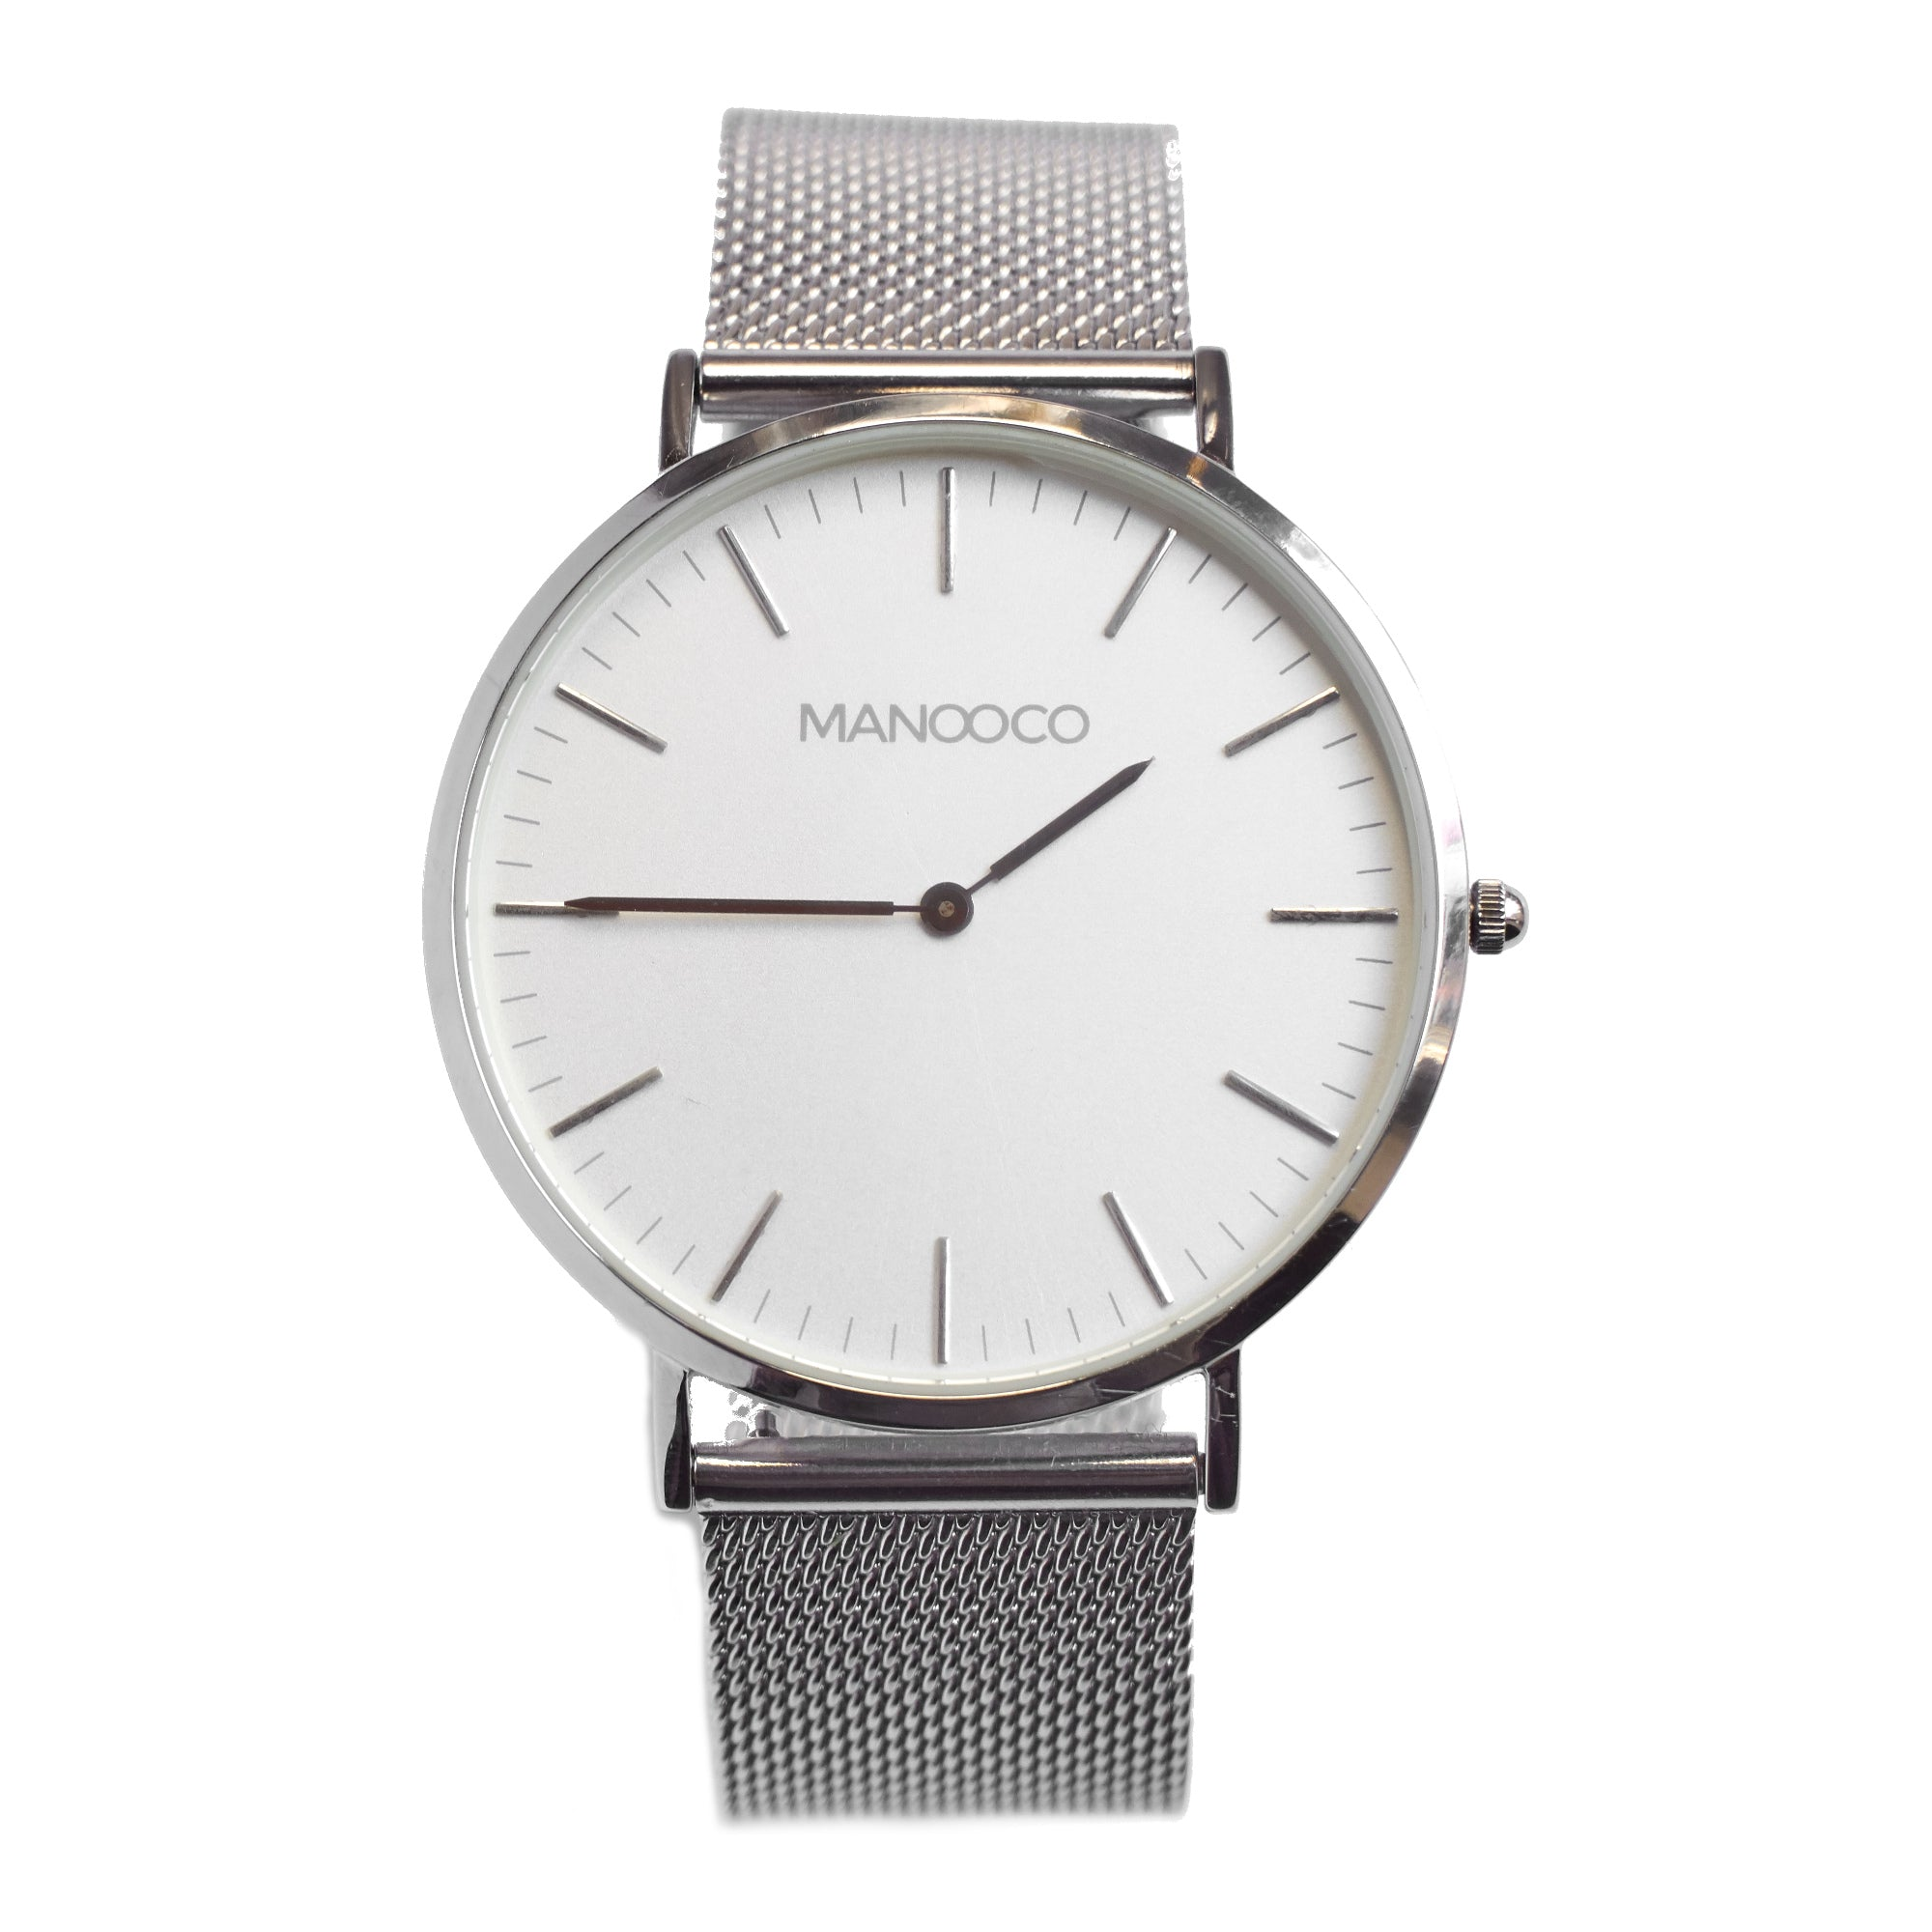 Zephyr Silver / Silver Mesh - Watch - MANOOCO - Watch - manooco